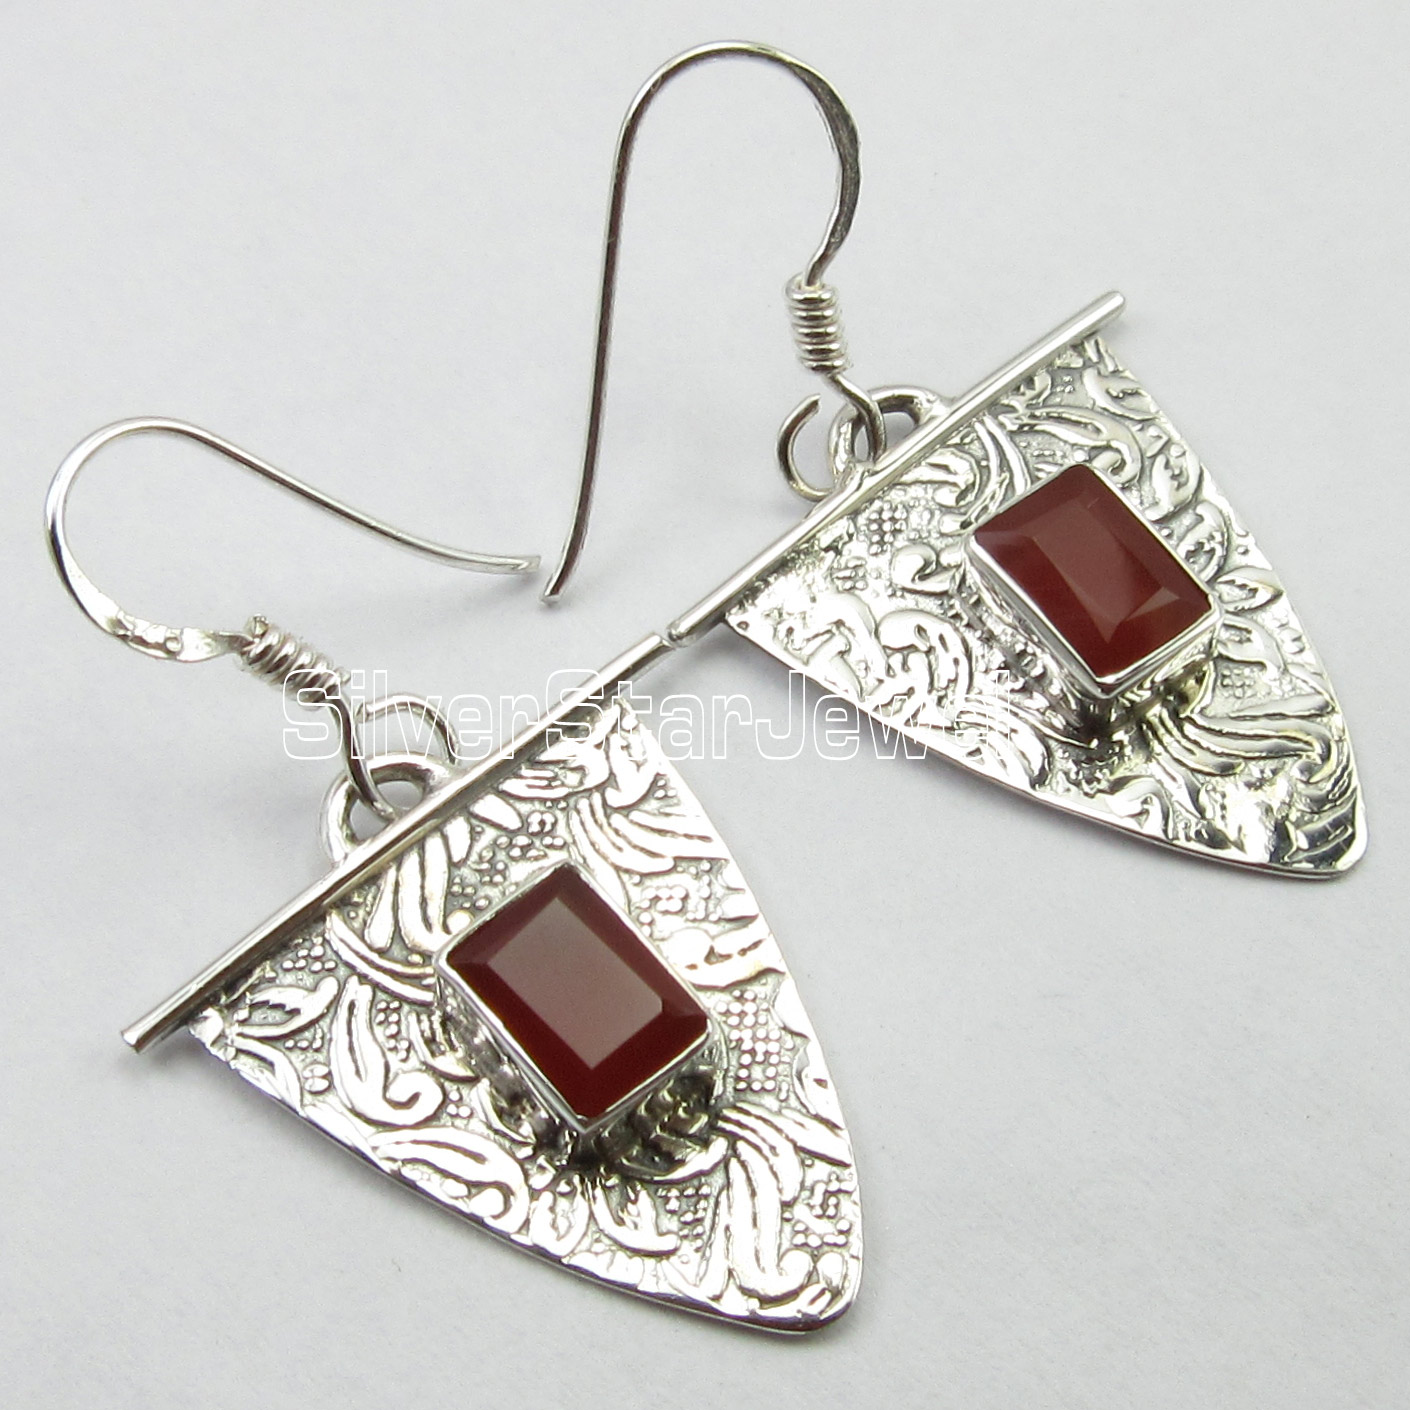 qigong earringsemei earrings carnelian product empowered